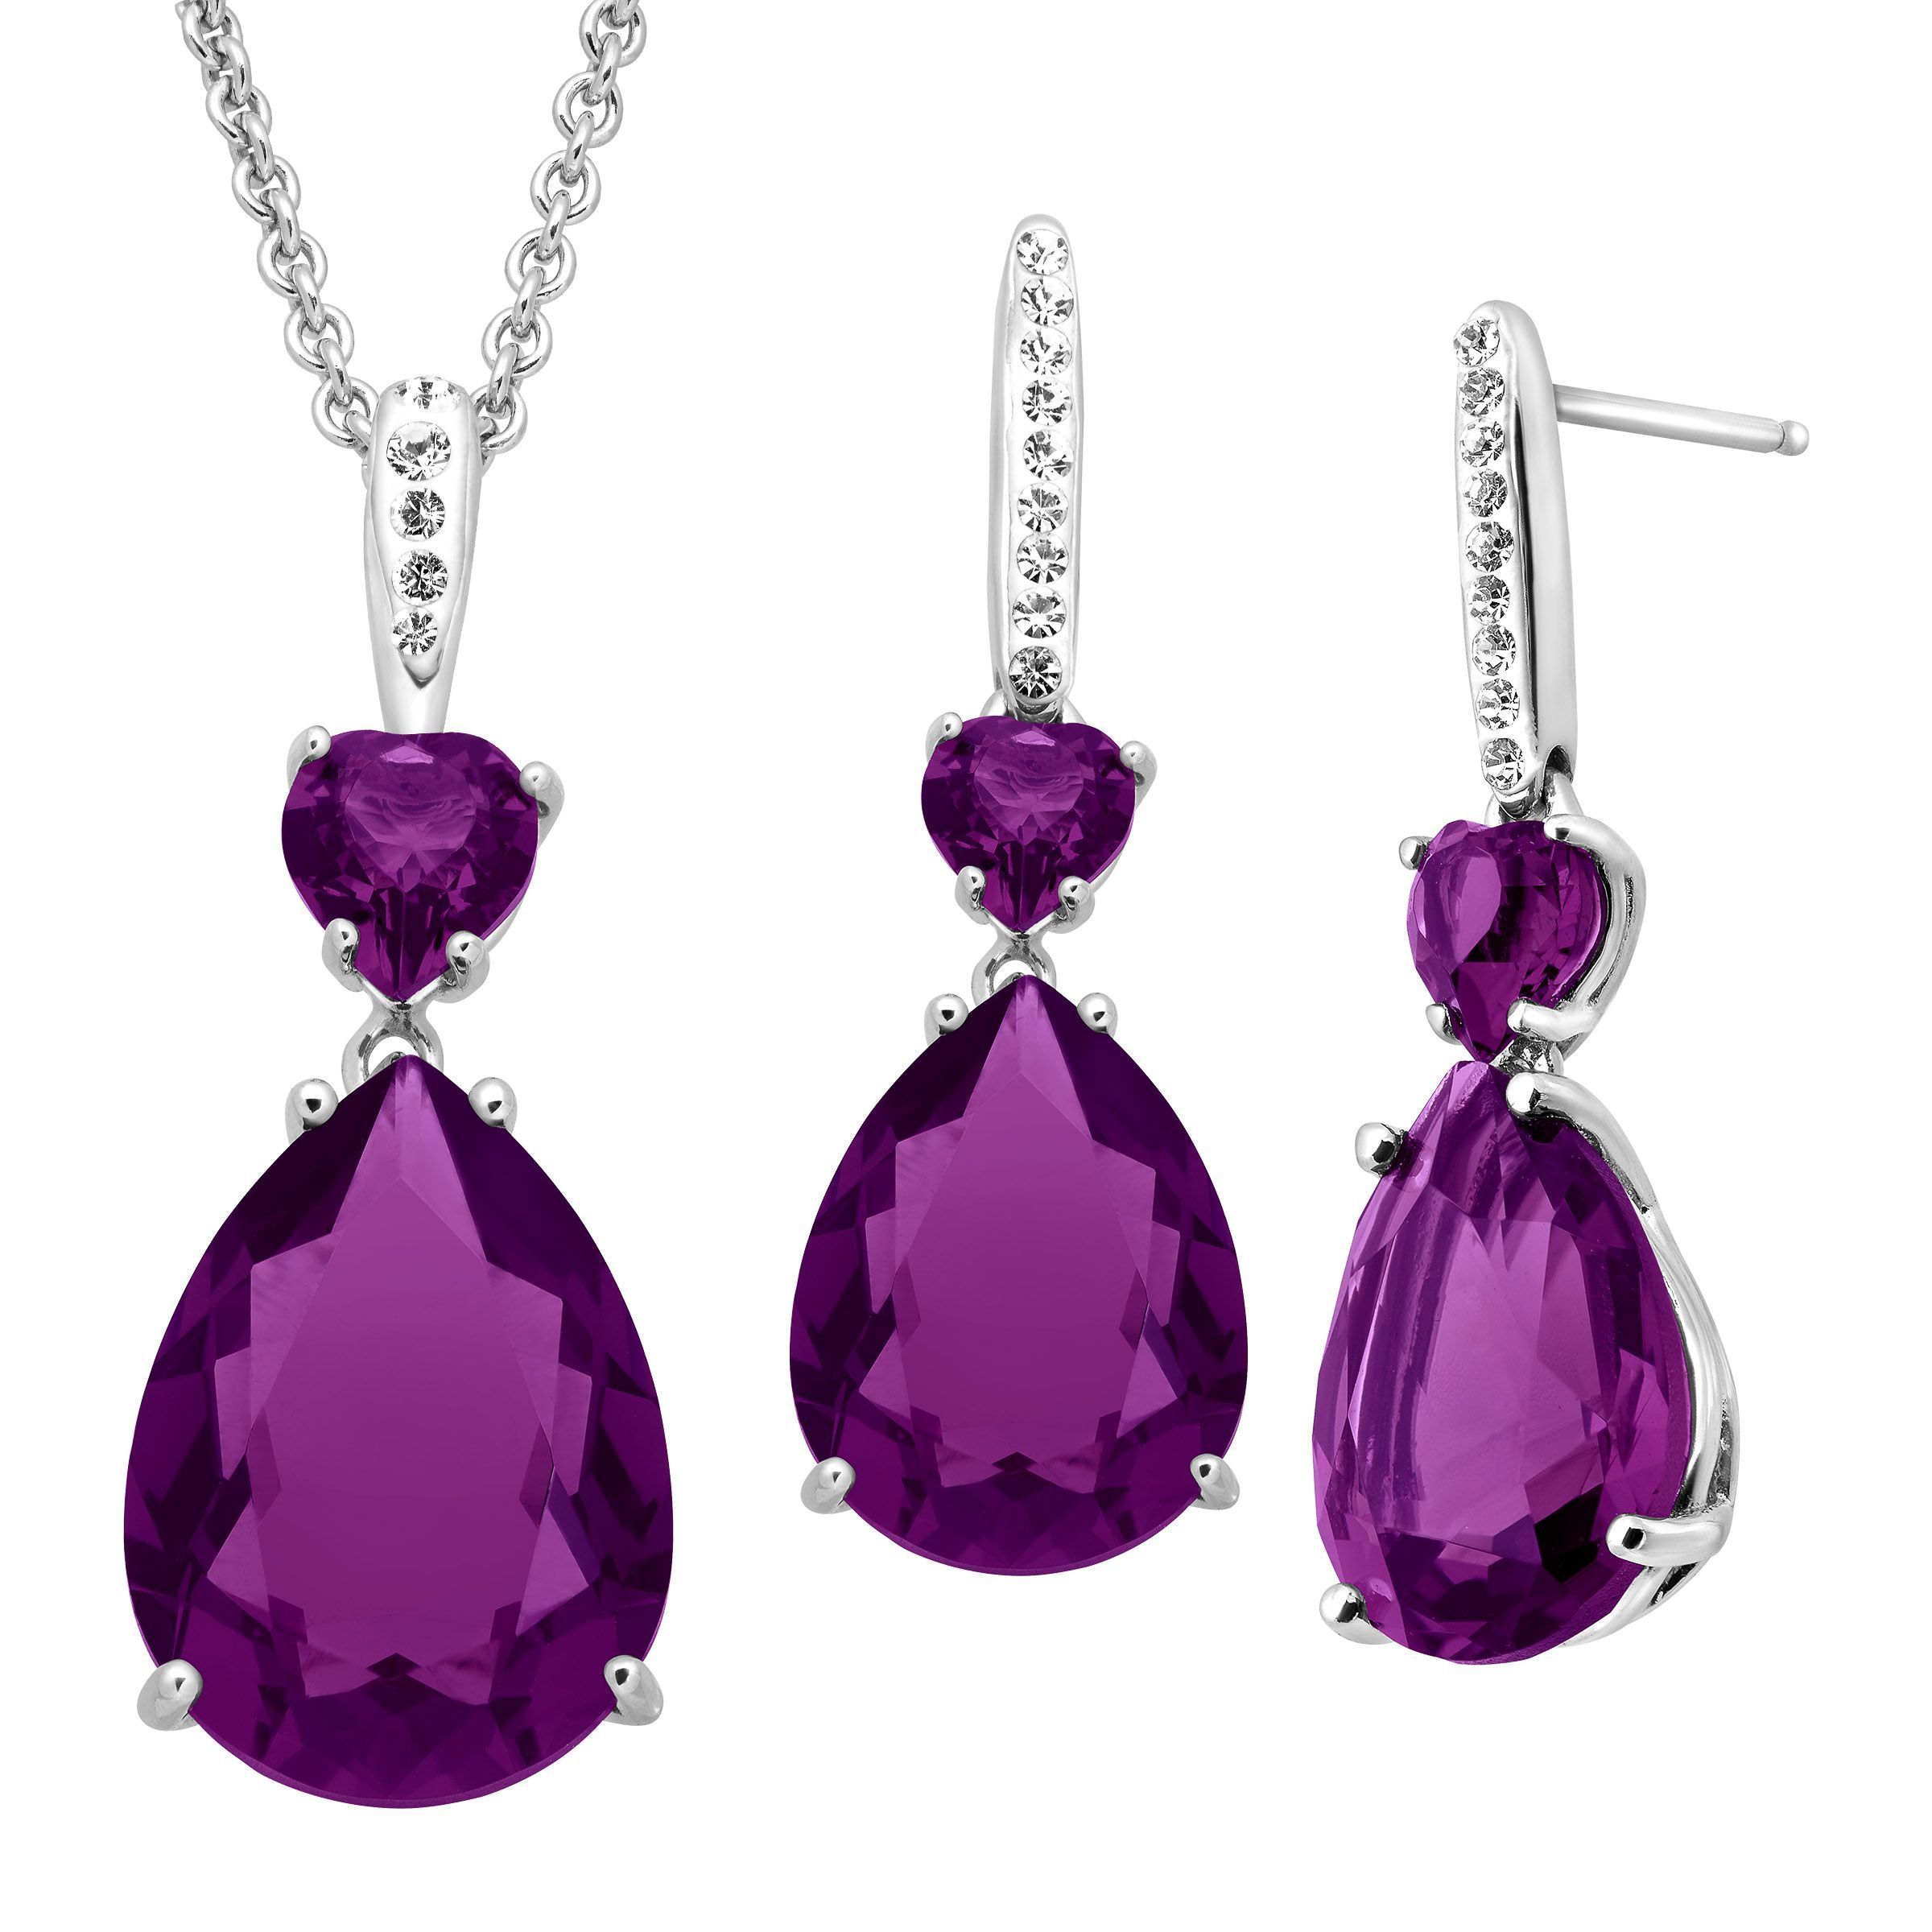 Details About Crystaluxe Pendant Earrings Set With Violet Swarovski Crystals Sterling Silver